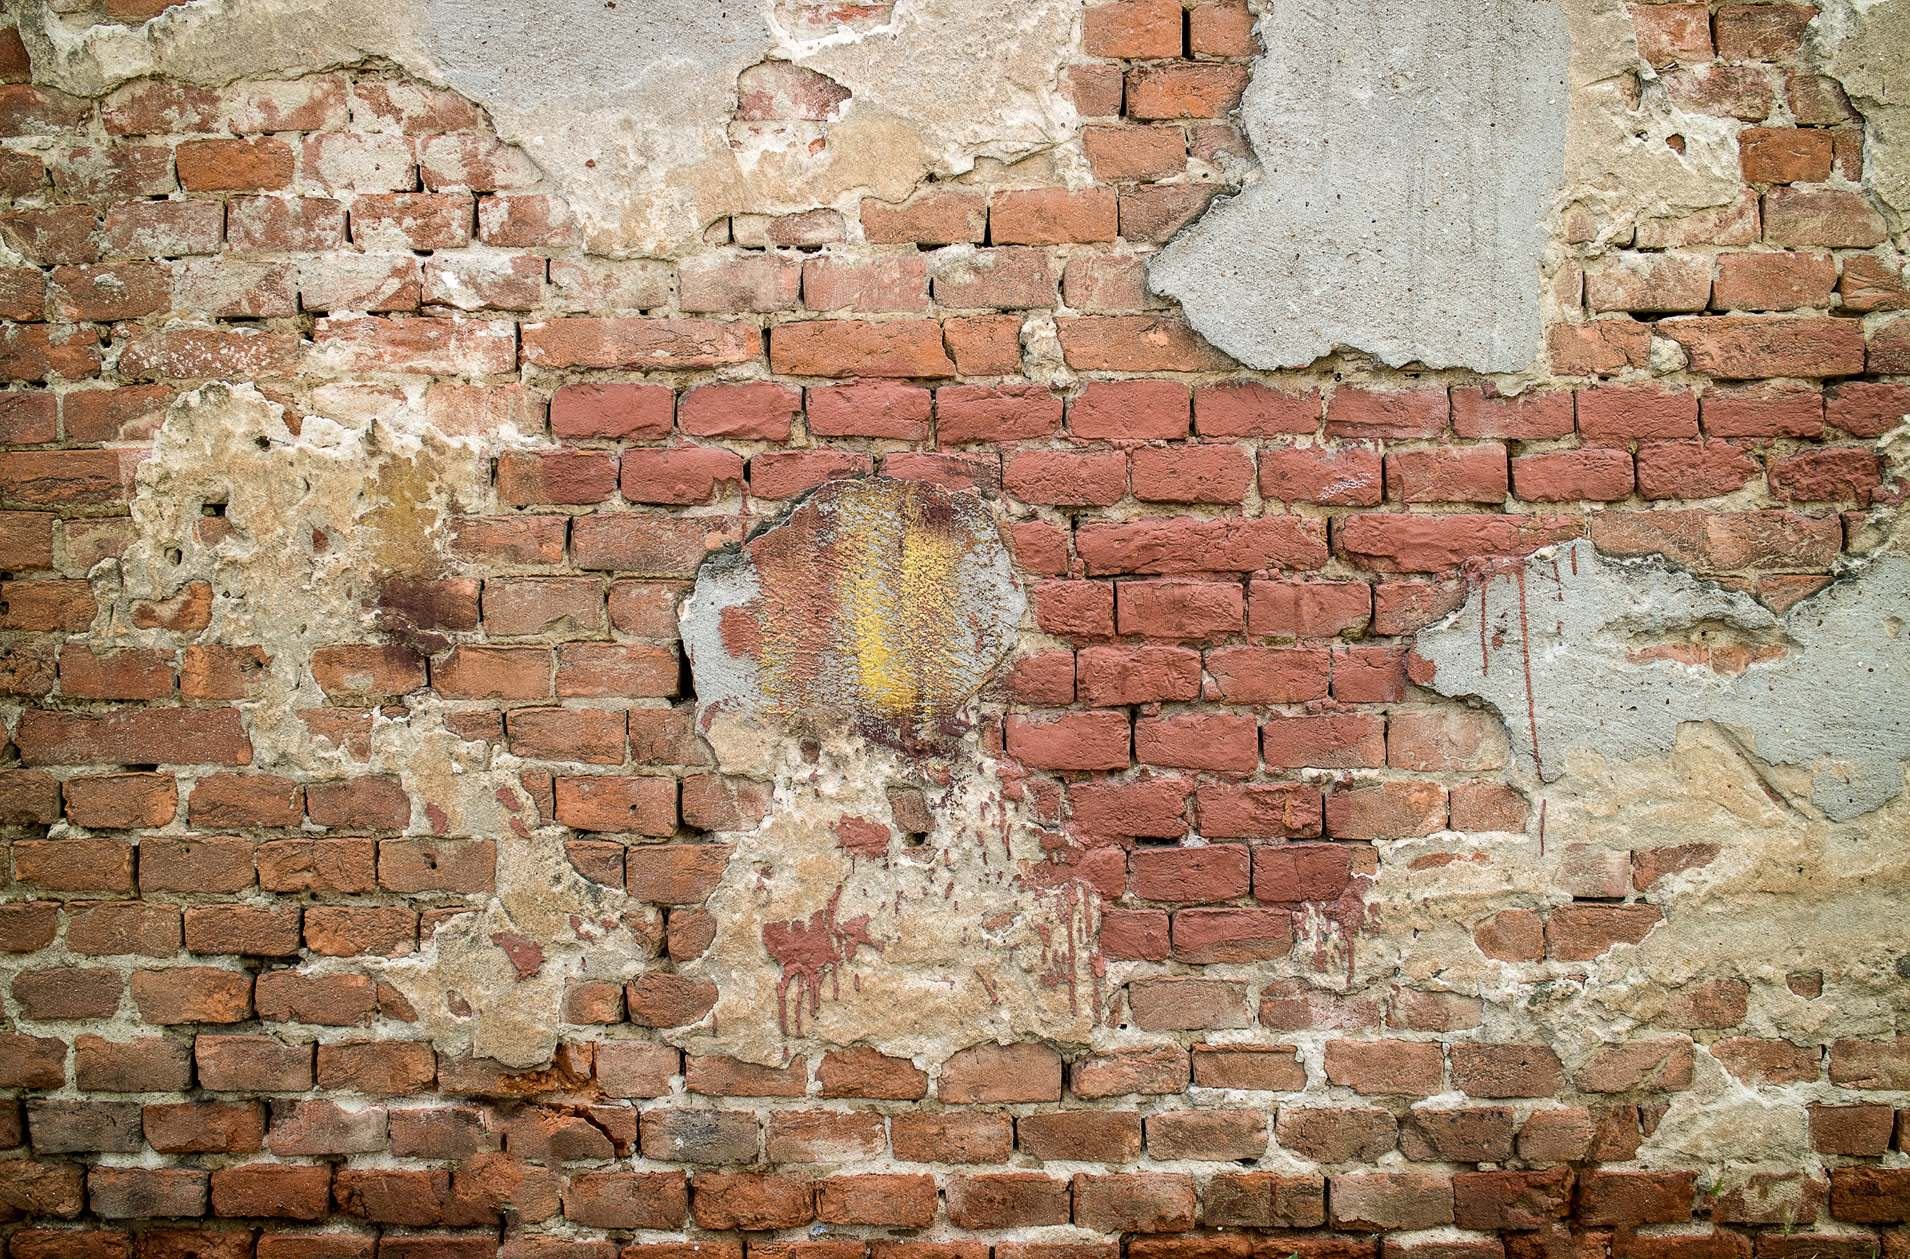 Vintage Stone Walls : Old vintage brick wall texture photohdx